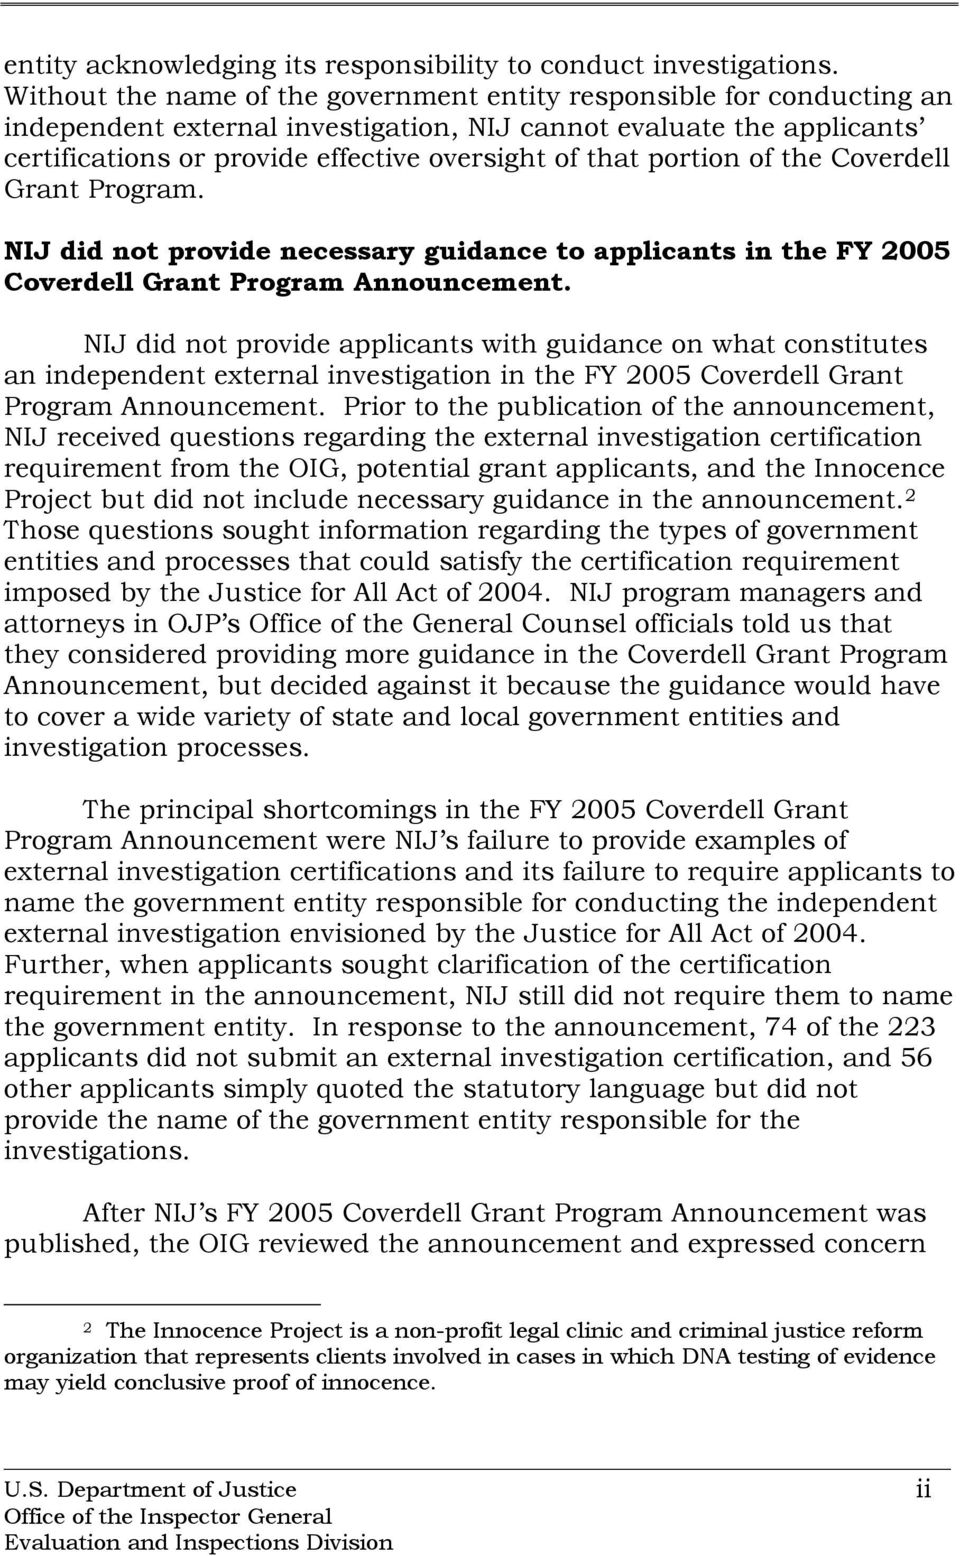 portion of the Coverdell Grant Program. NIJ did not provide necessary guidance to applicants in the FY 2005 Coverdell Grant Program Announcement.